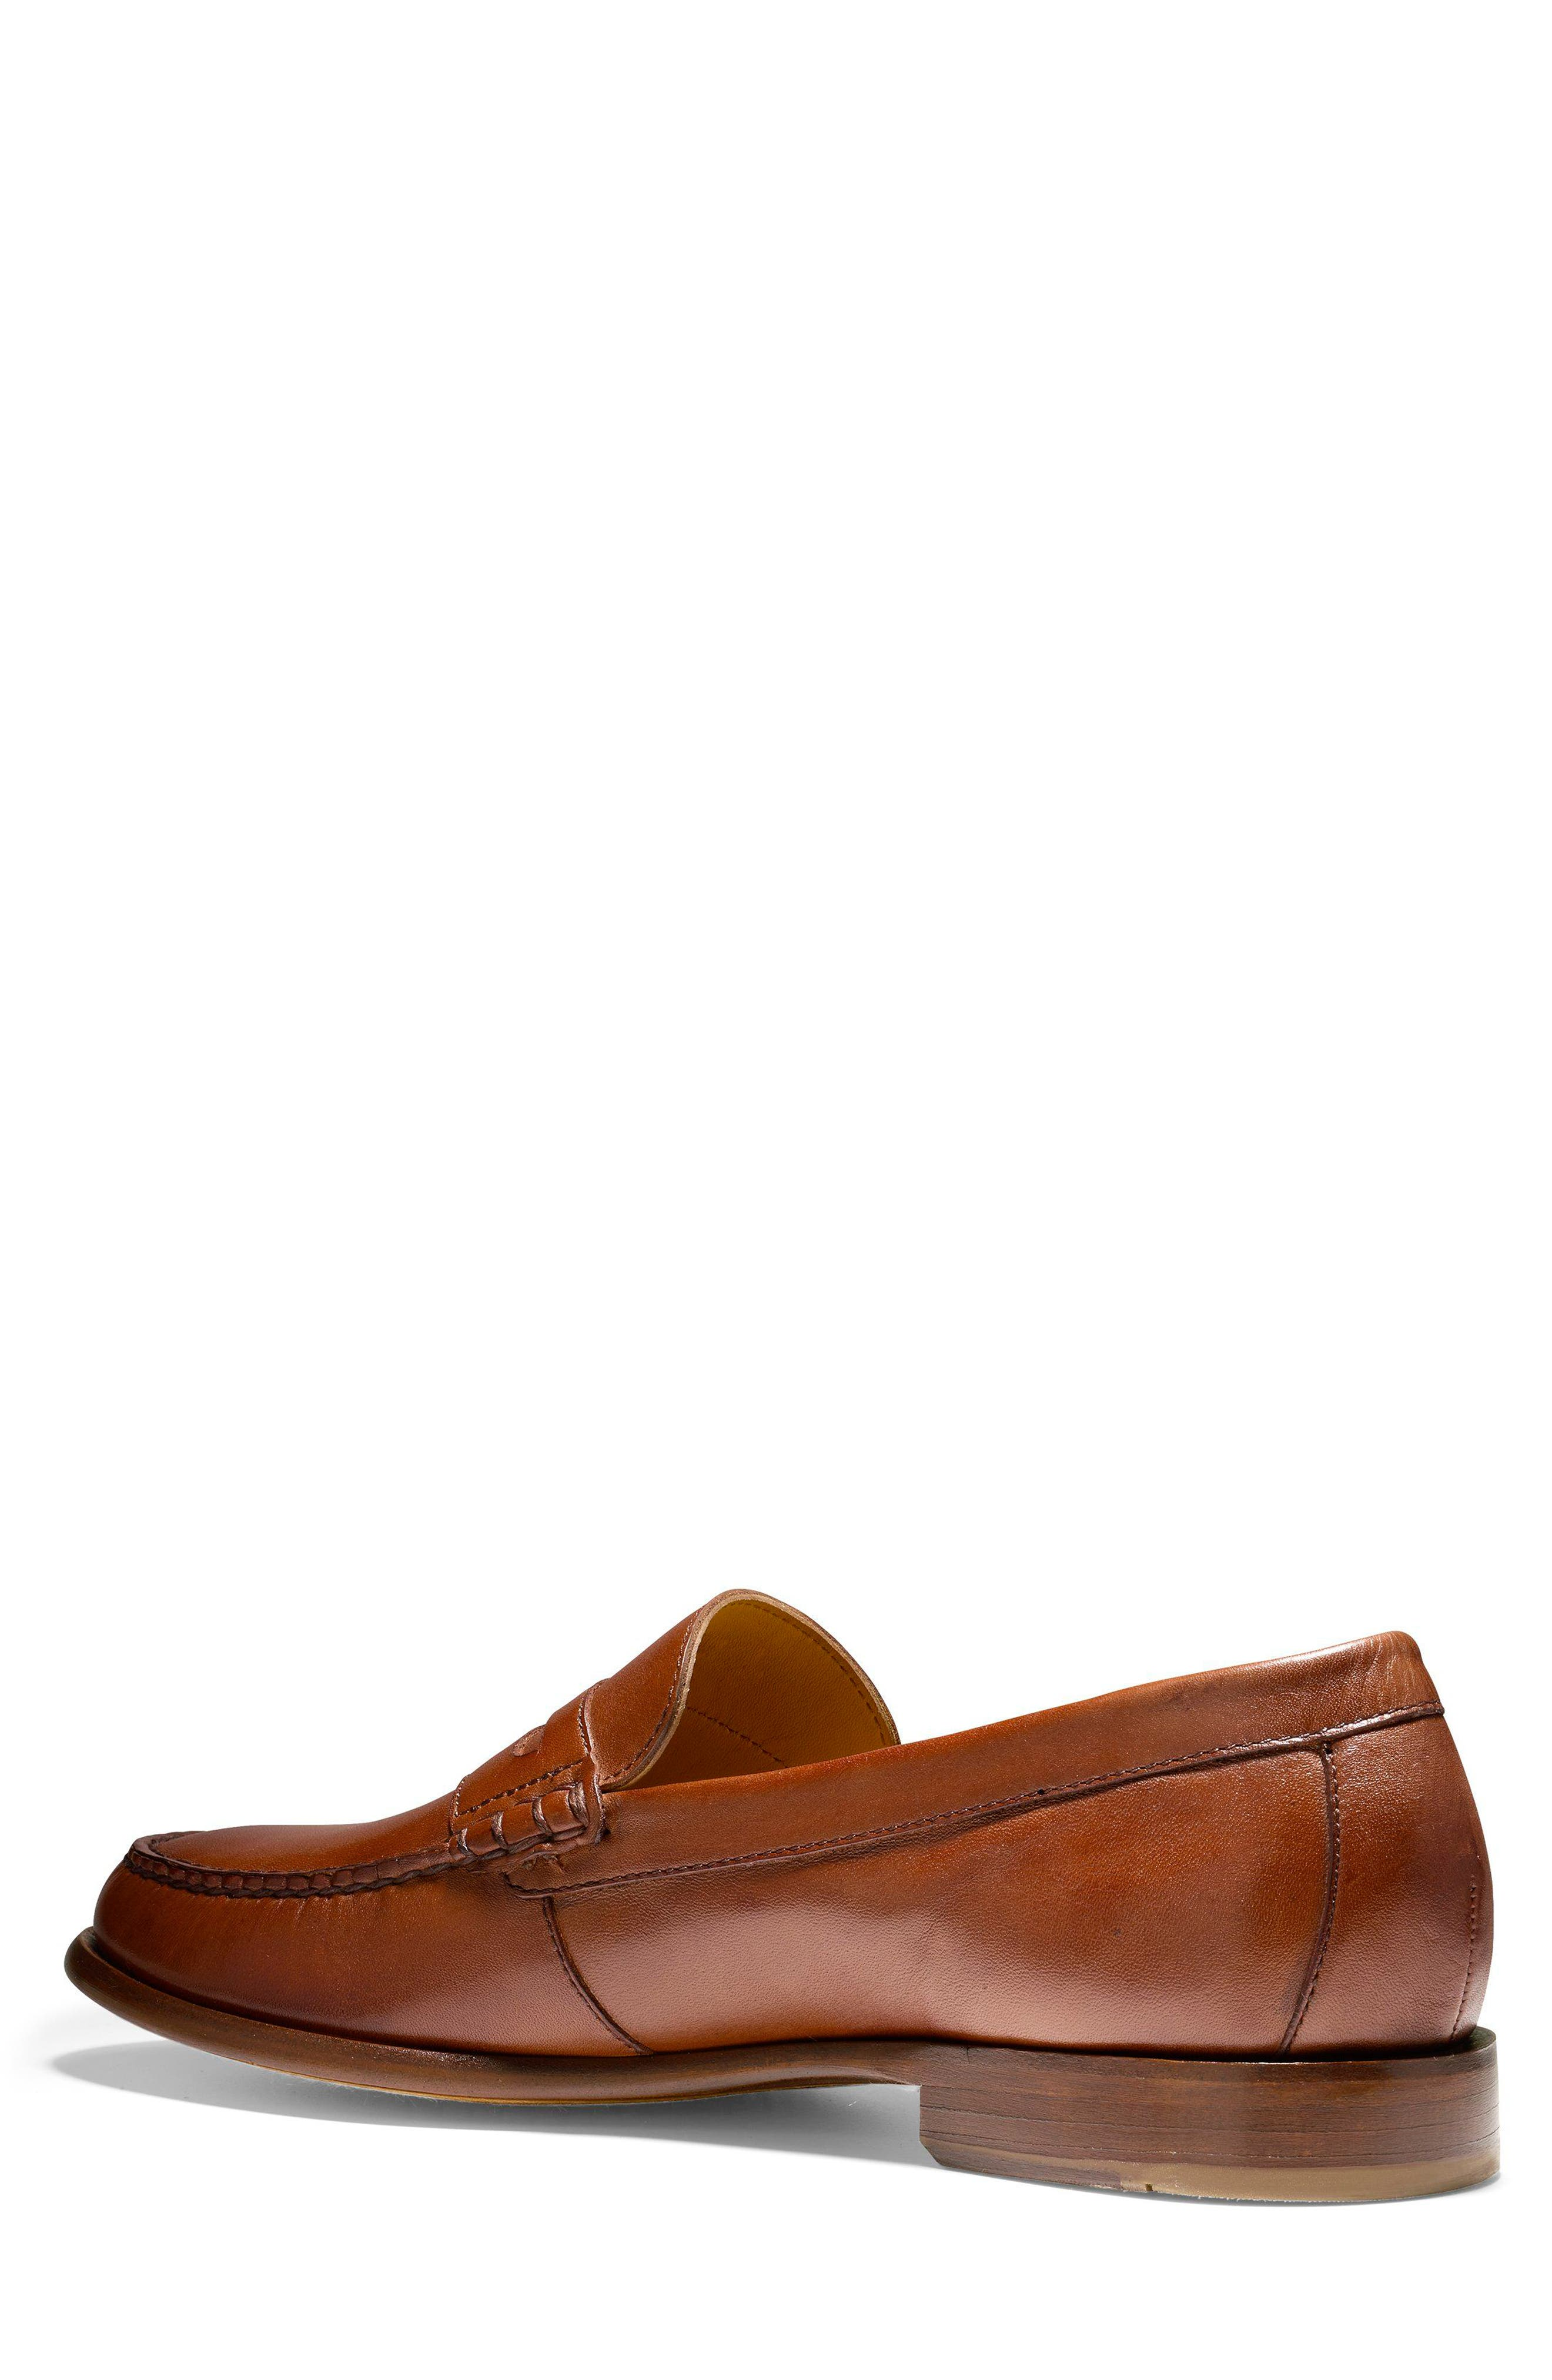 Pinch Penny Loafer,                             Alternate thumbnail 2, color,                             British Tan Leather